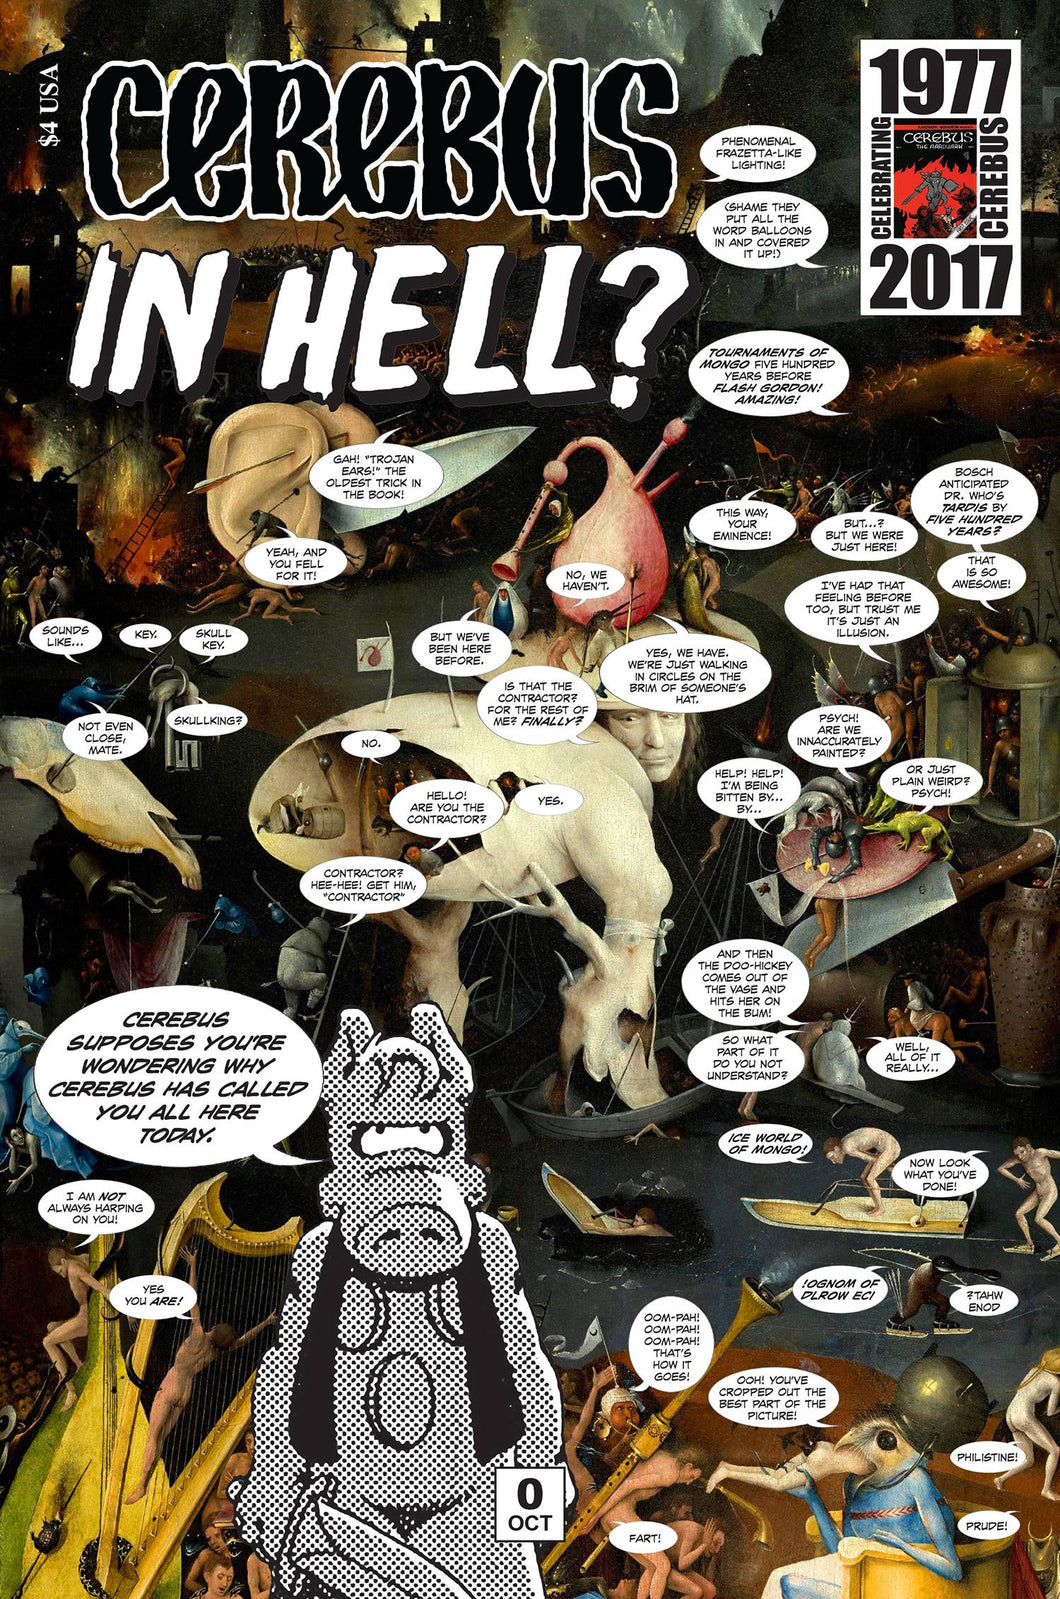 CEREBUS IN HELL #0-4 (Aardvark-Vanaheim) Complete Set